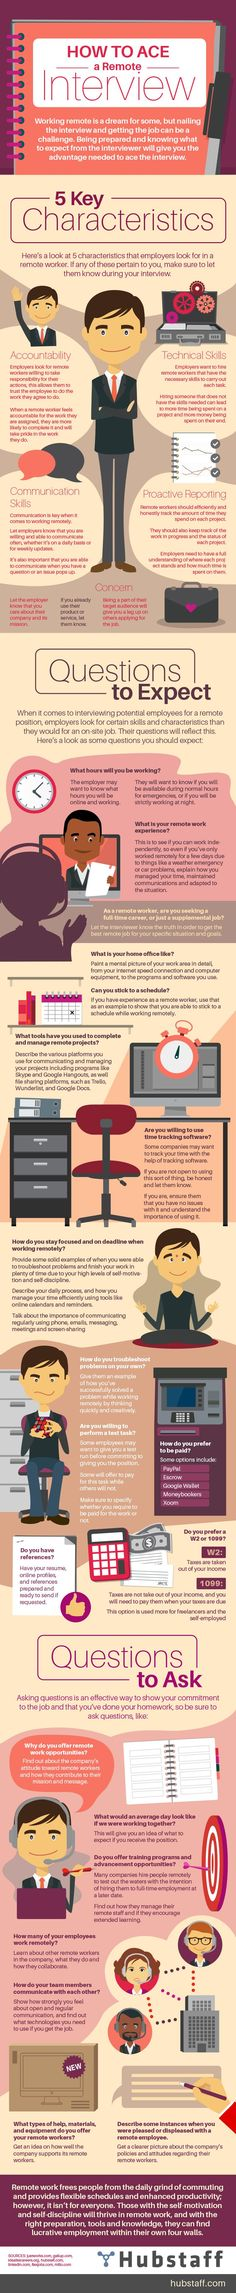 When it comes to interviewing potential employees for a remote position, employers look for certain skills ad characteristics than they would for an on-site job. This infographic from Hubstaff.com shows job seekers the keys to excelling at their remote interviews.